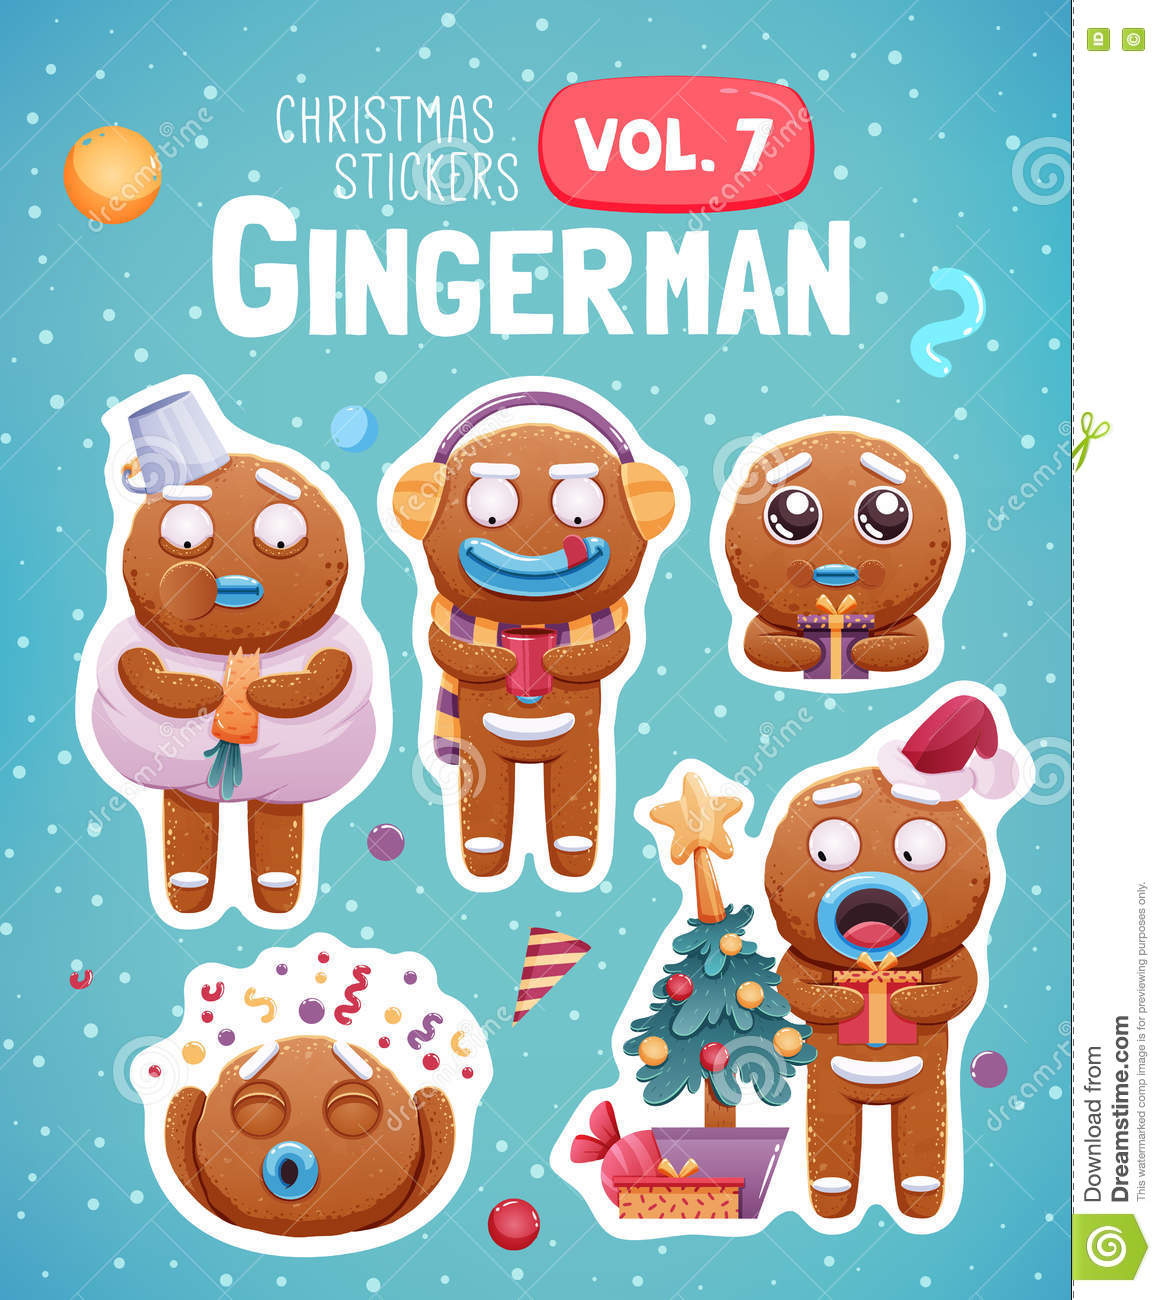 Set of christmas stickers with expressive gingerbread man cookies.